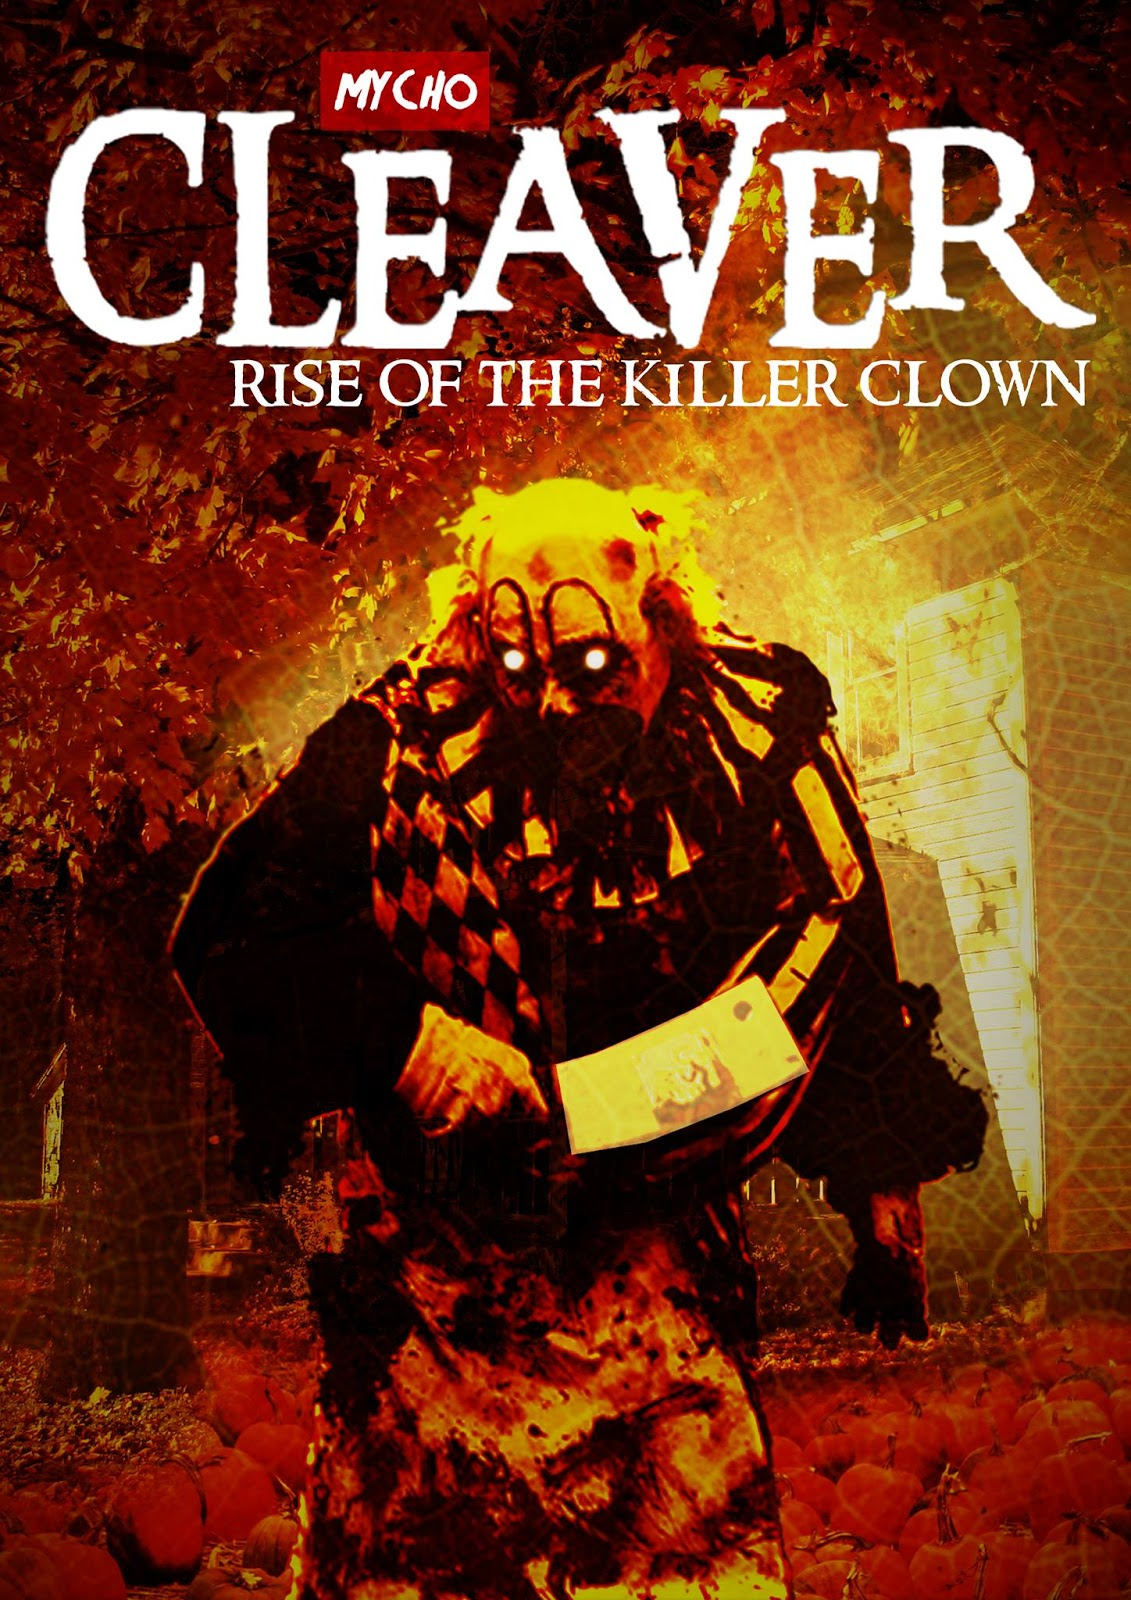 Putlocker Watch Online Cleaver: Rise of the Killer Clown (2015) Full Movie HD putlocker